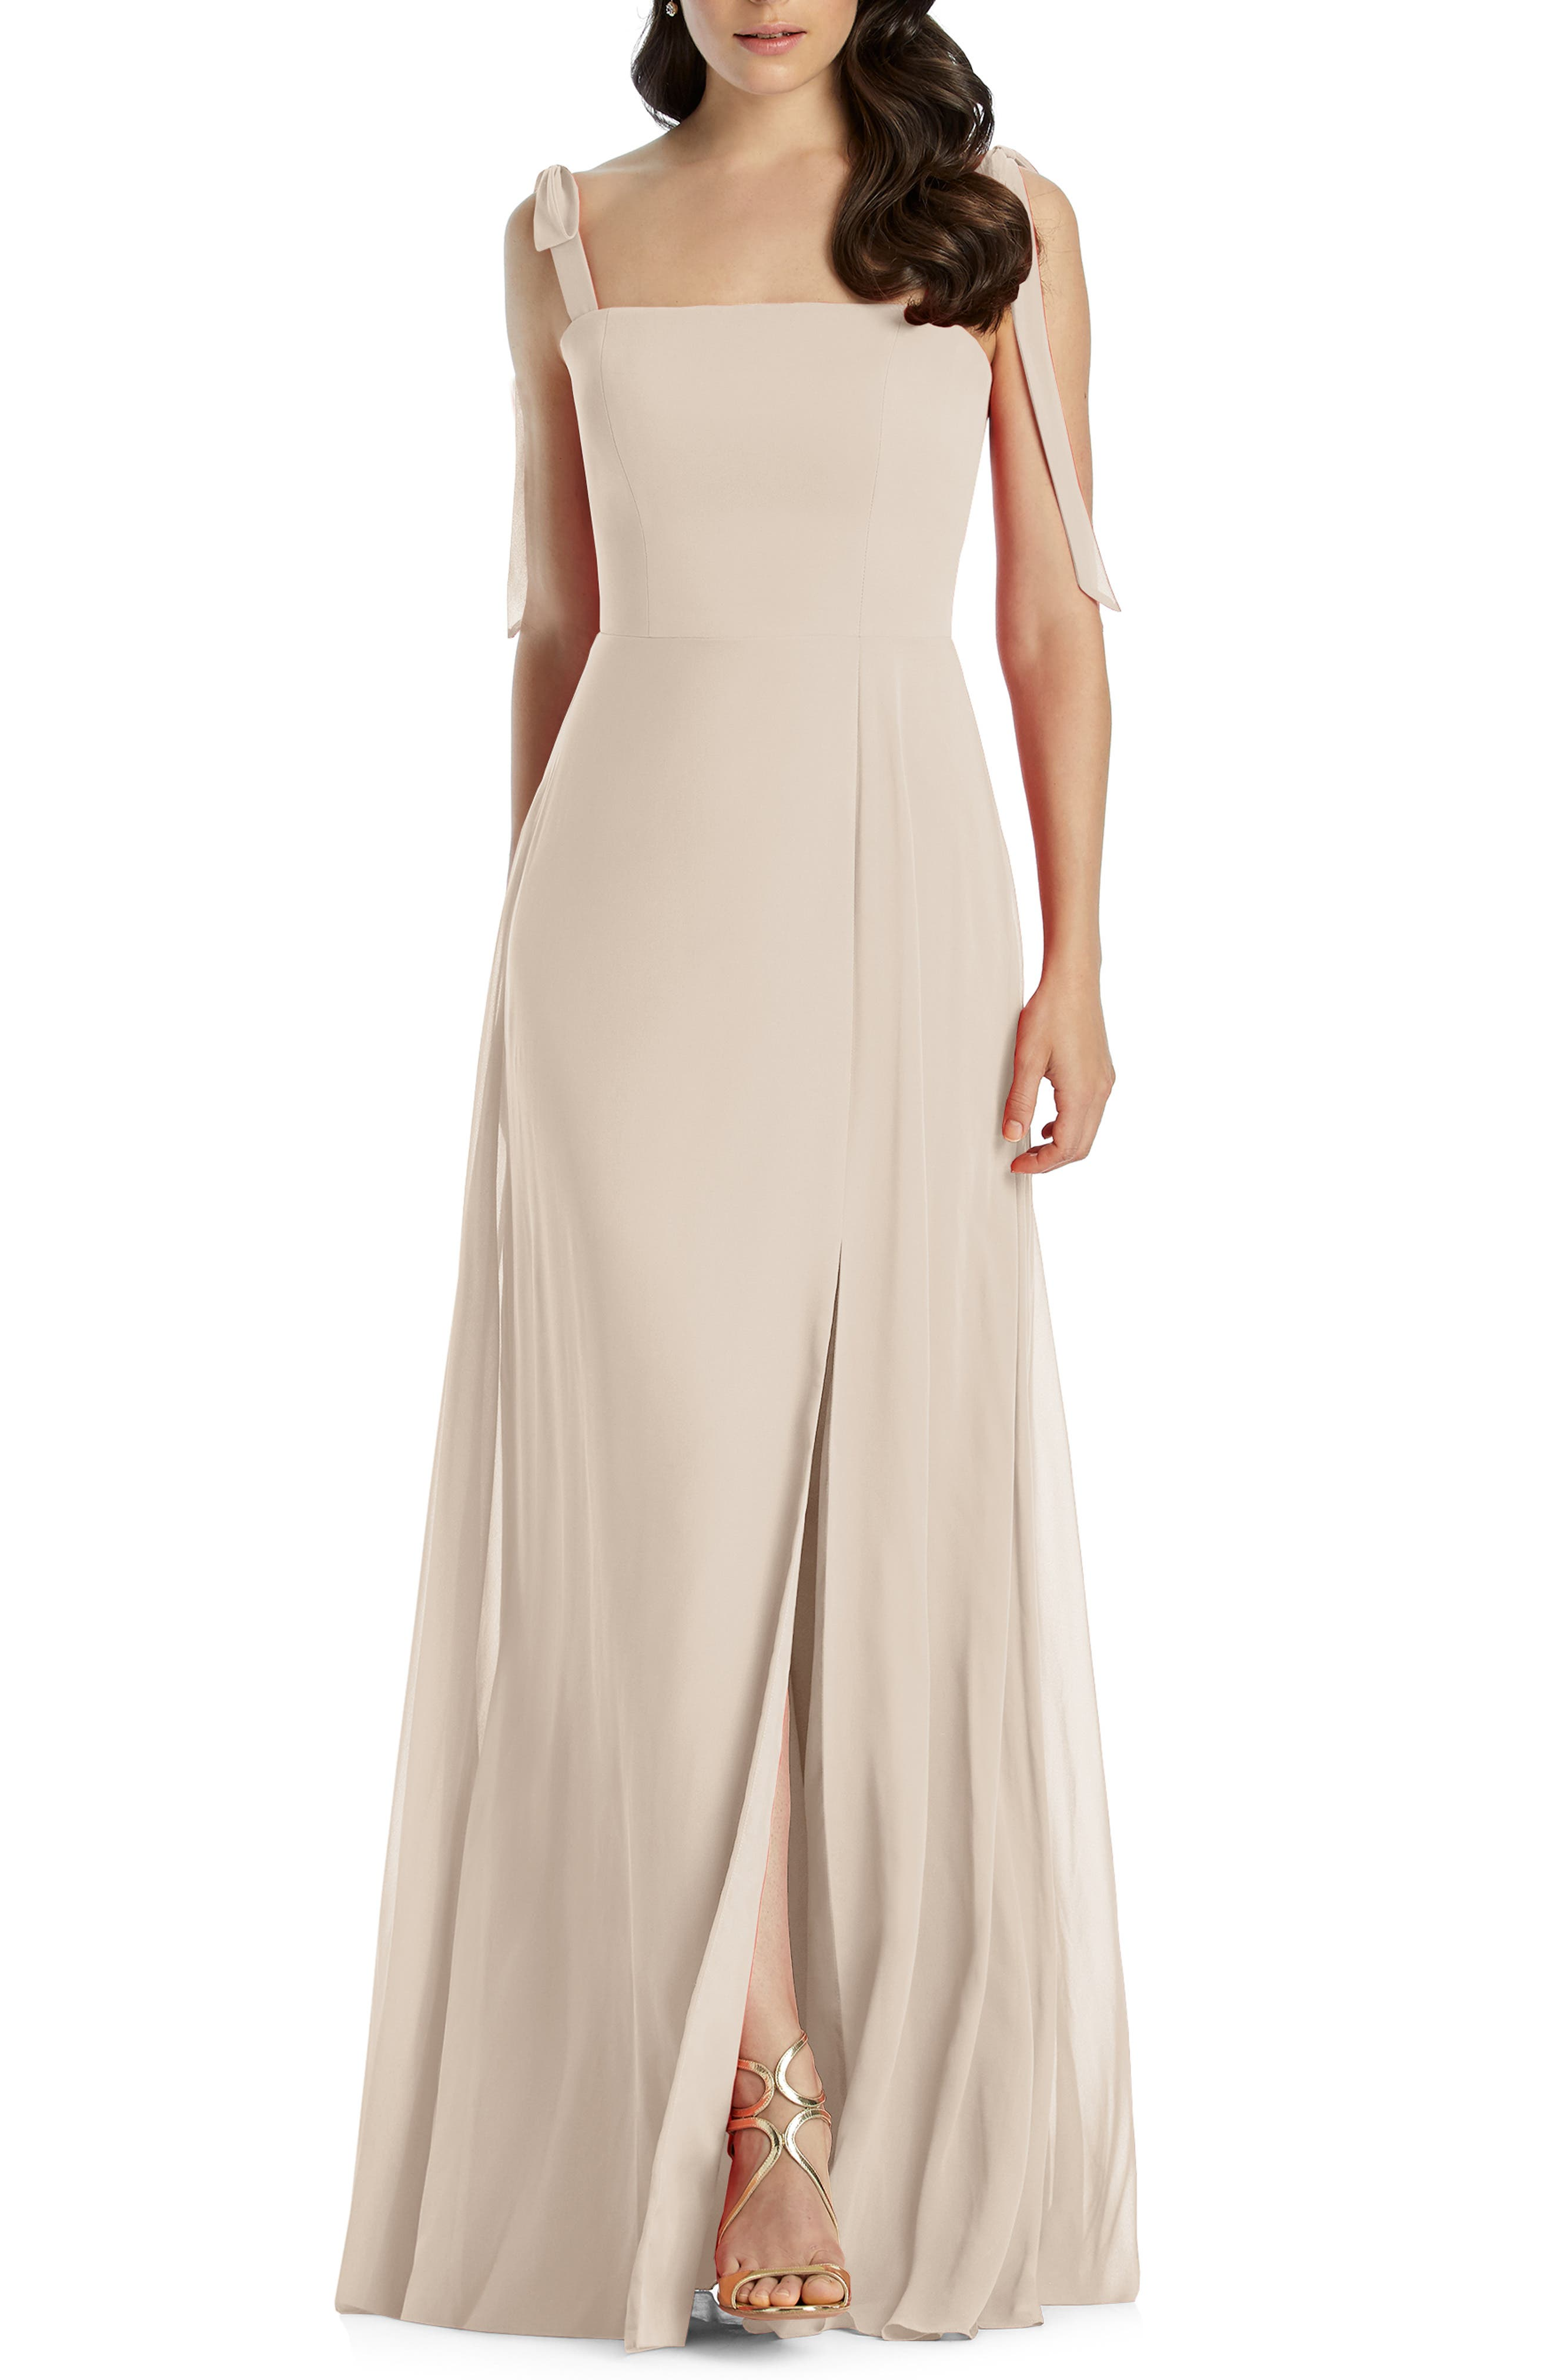 DESSY COLLECTION, Shoulder Tie Chiffon Evening Dress, Main thumbnail 1, color, CAMEO